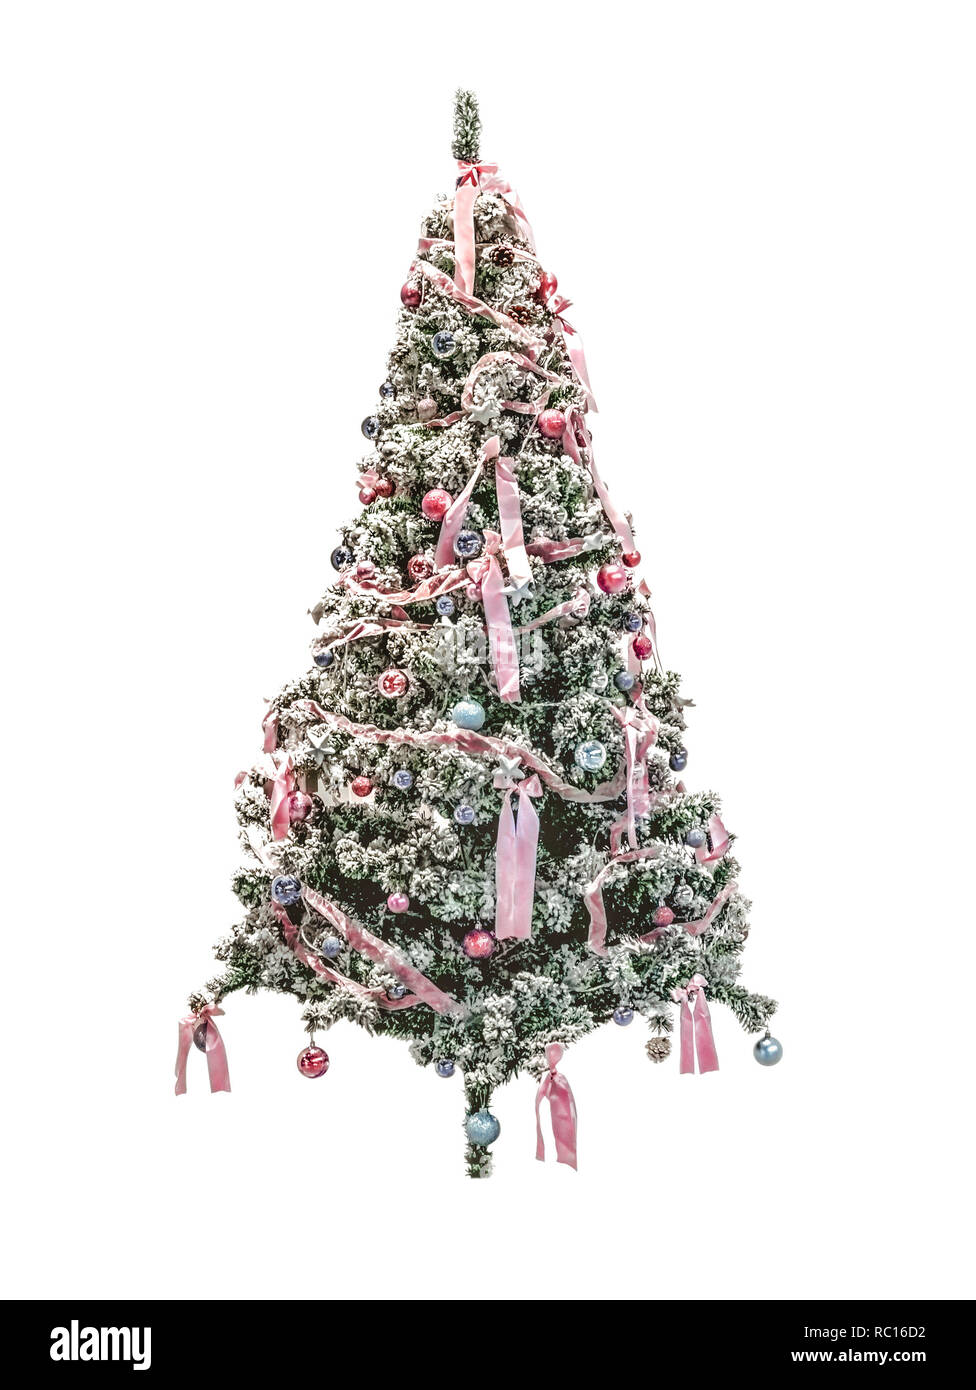 Christmas Tree Bows White.Christmas Tree With Bows And Balls As Decor For Celebrating